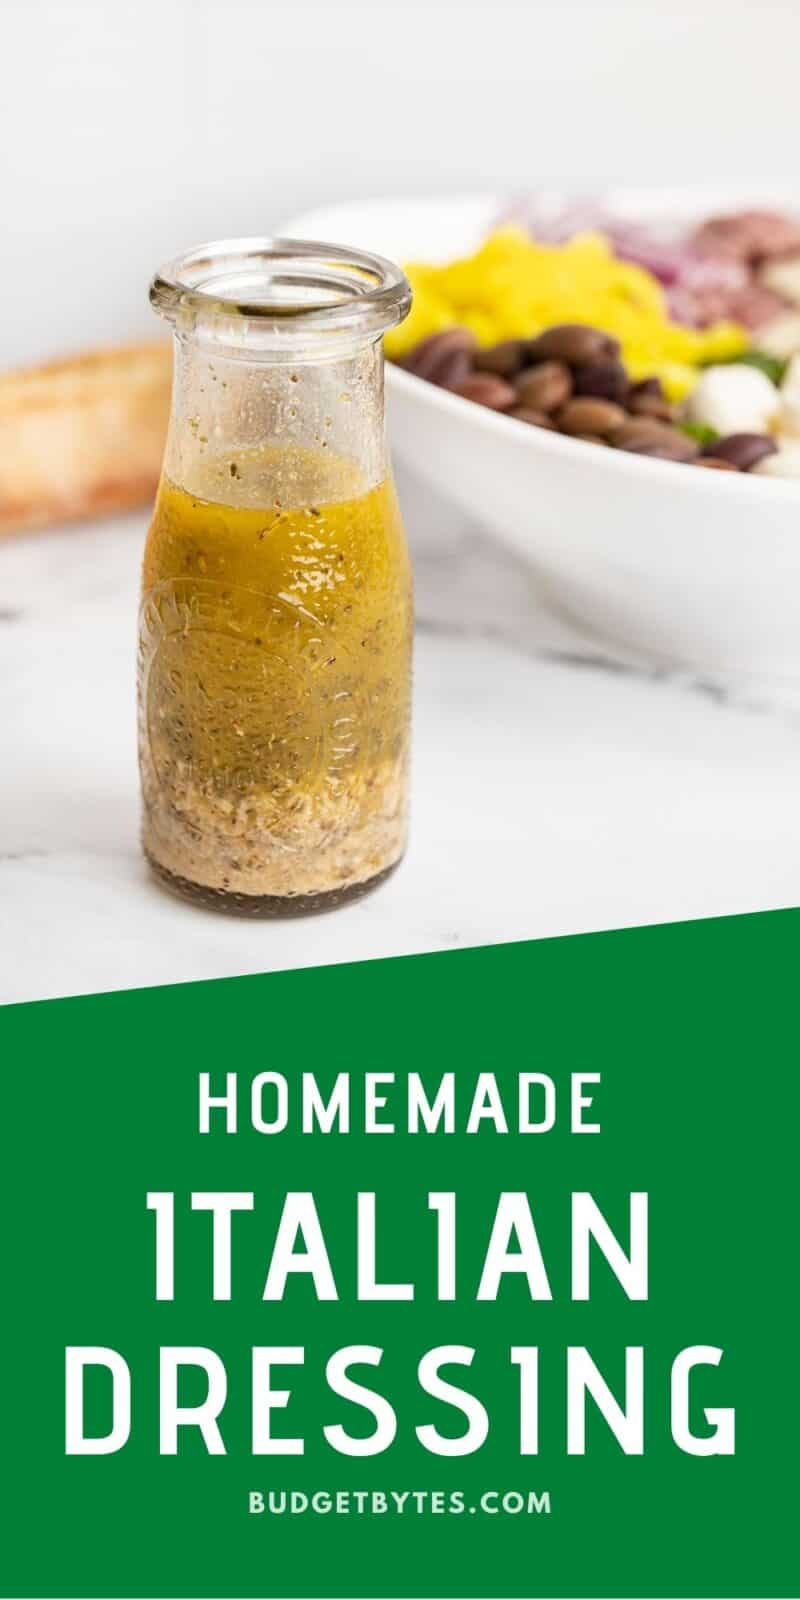 Italian dressing in a glass carafe with title text at the bottom